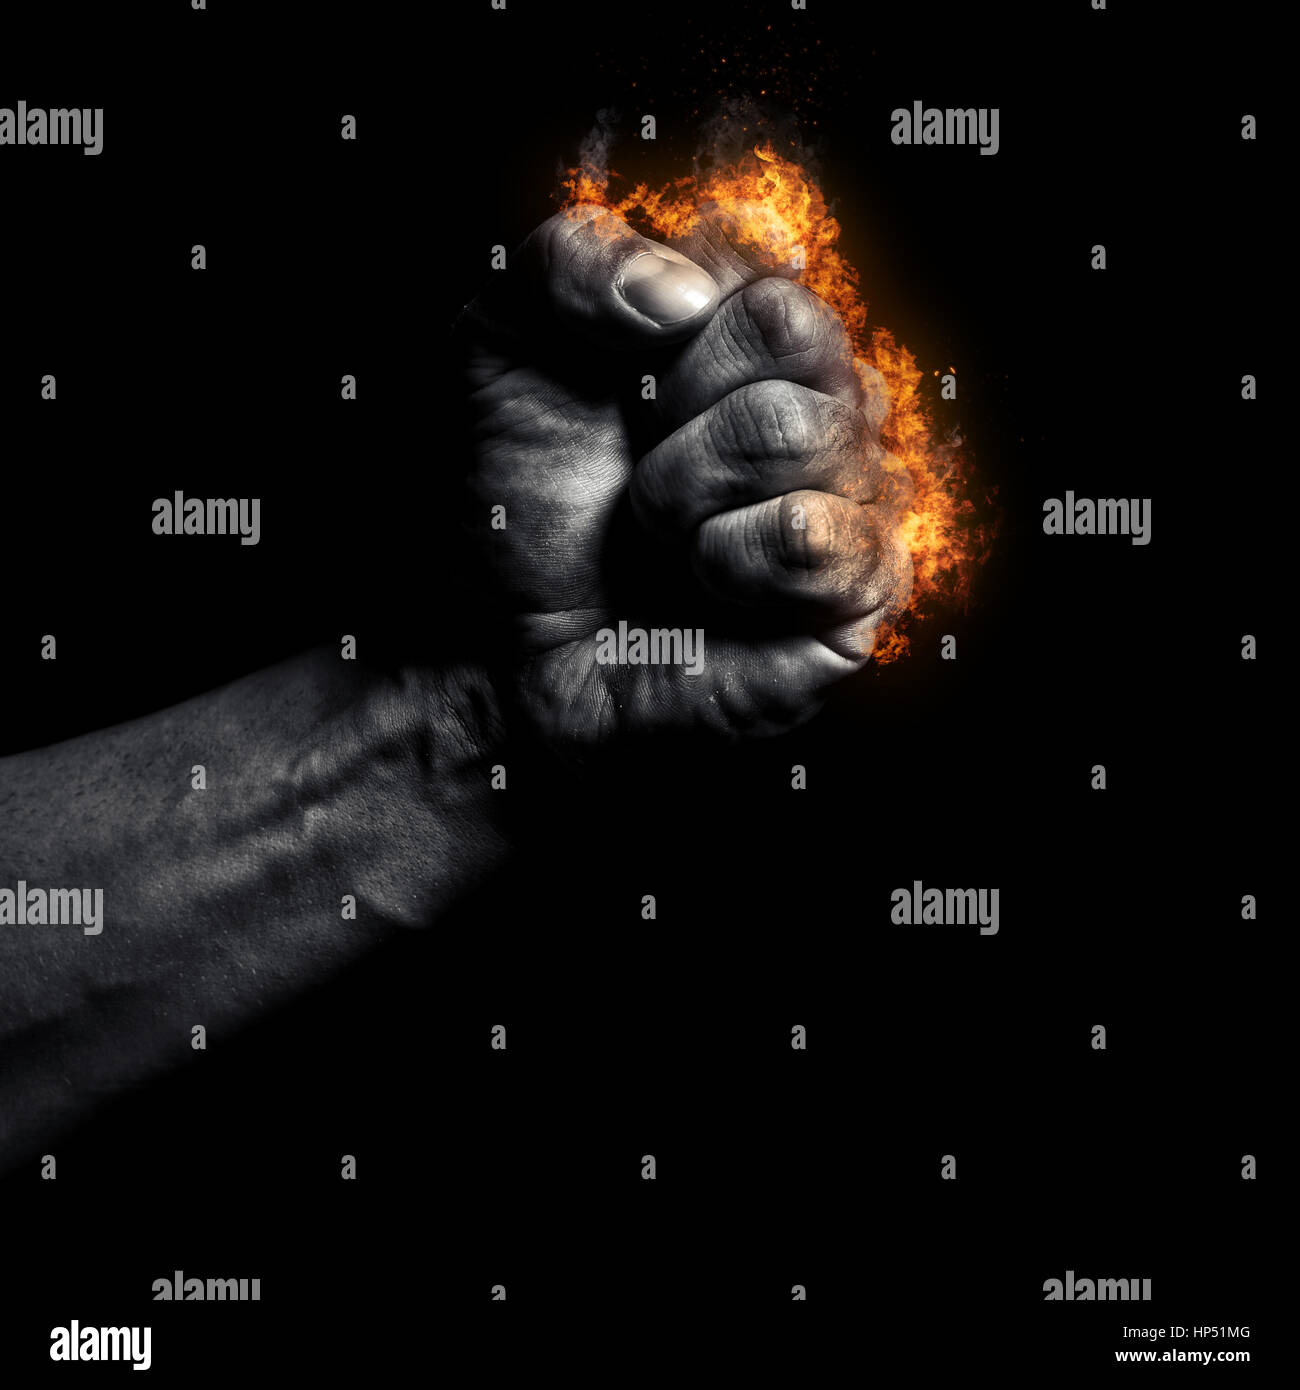 Burning man's clenched fist on a black background - Stock Image